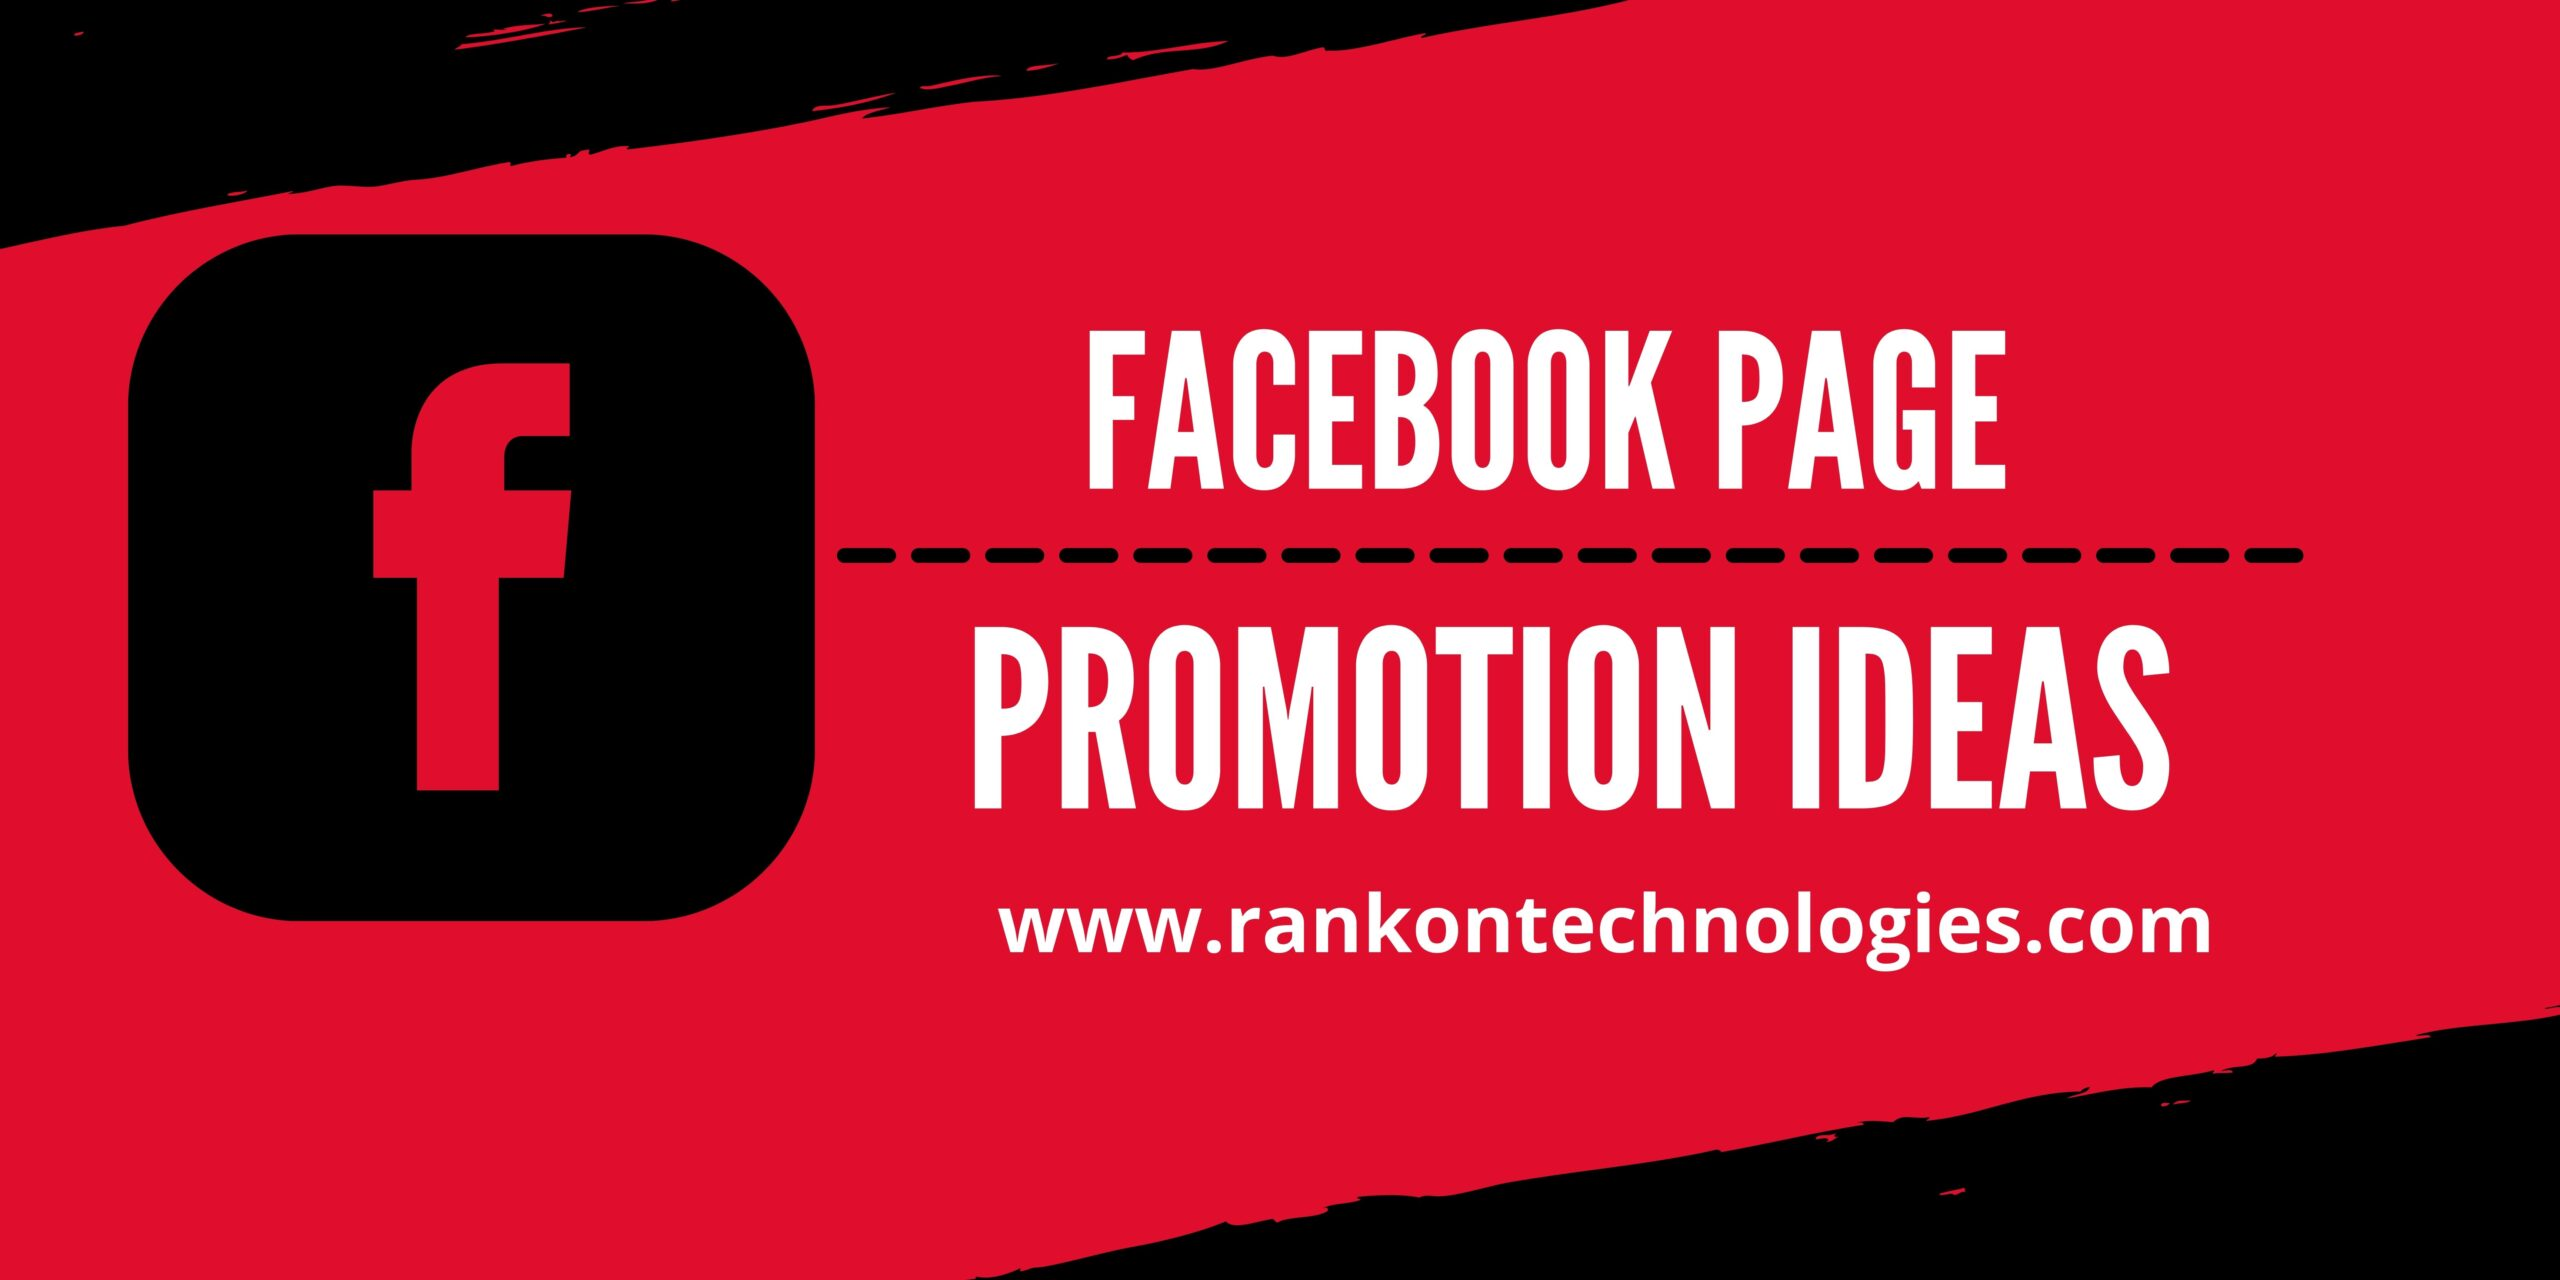 Facebook Page Promotion: How To Promote Your Facebook Page?